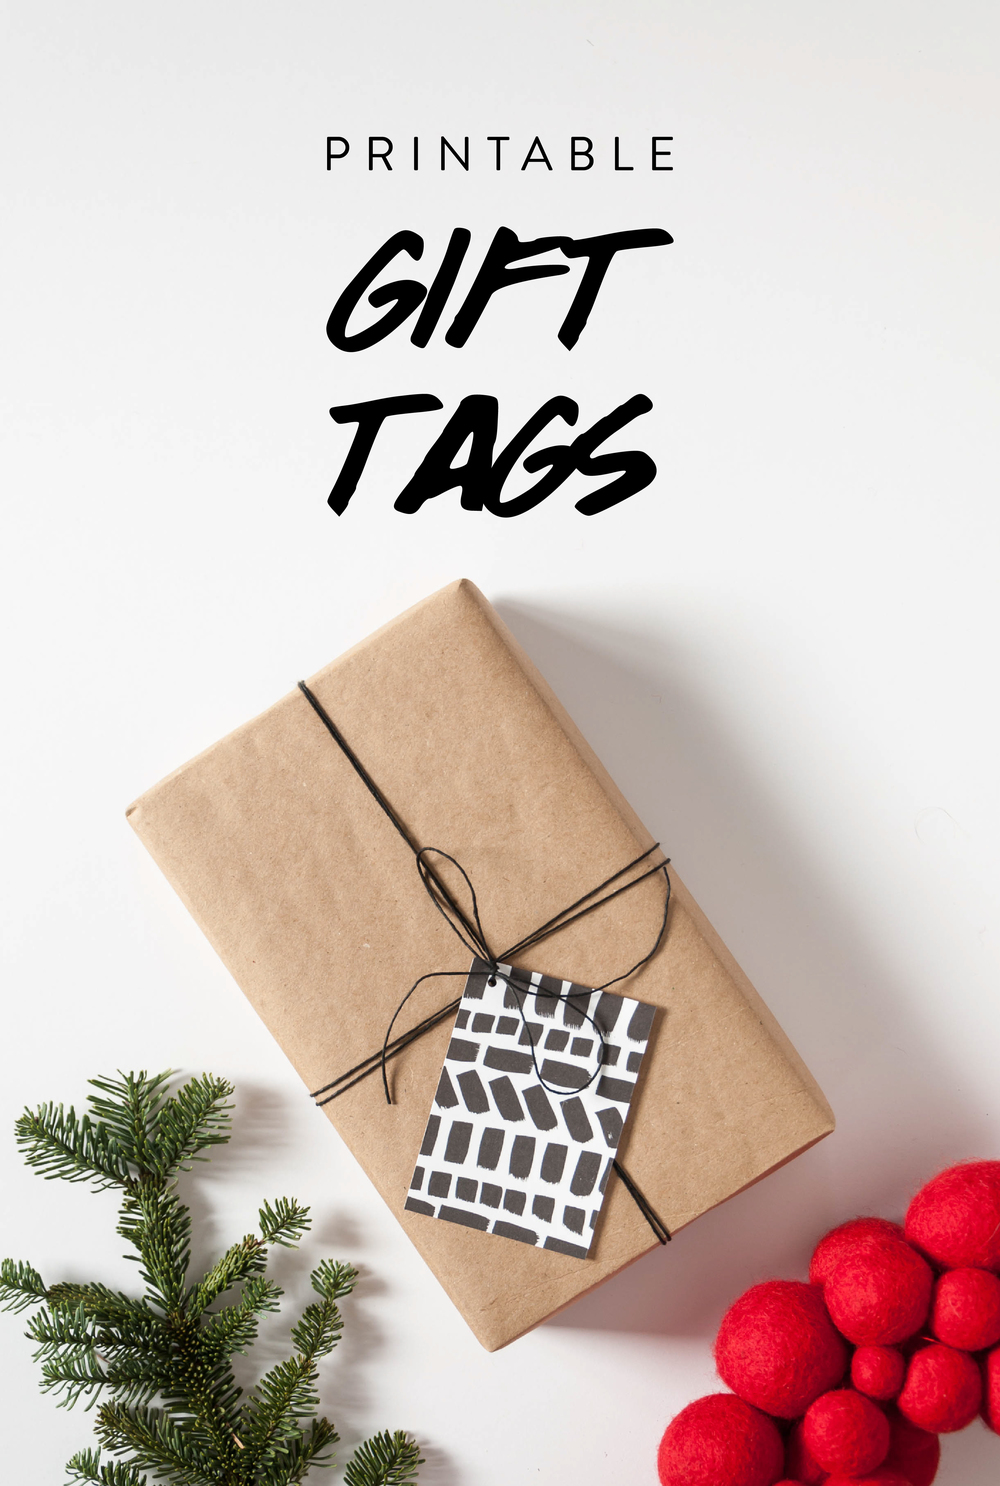 Free printable gift tags with modern brush stroke pattern.  Click to download.